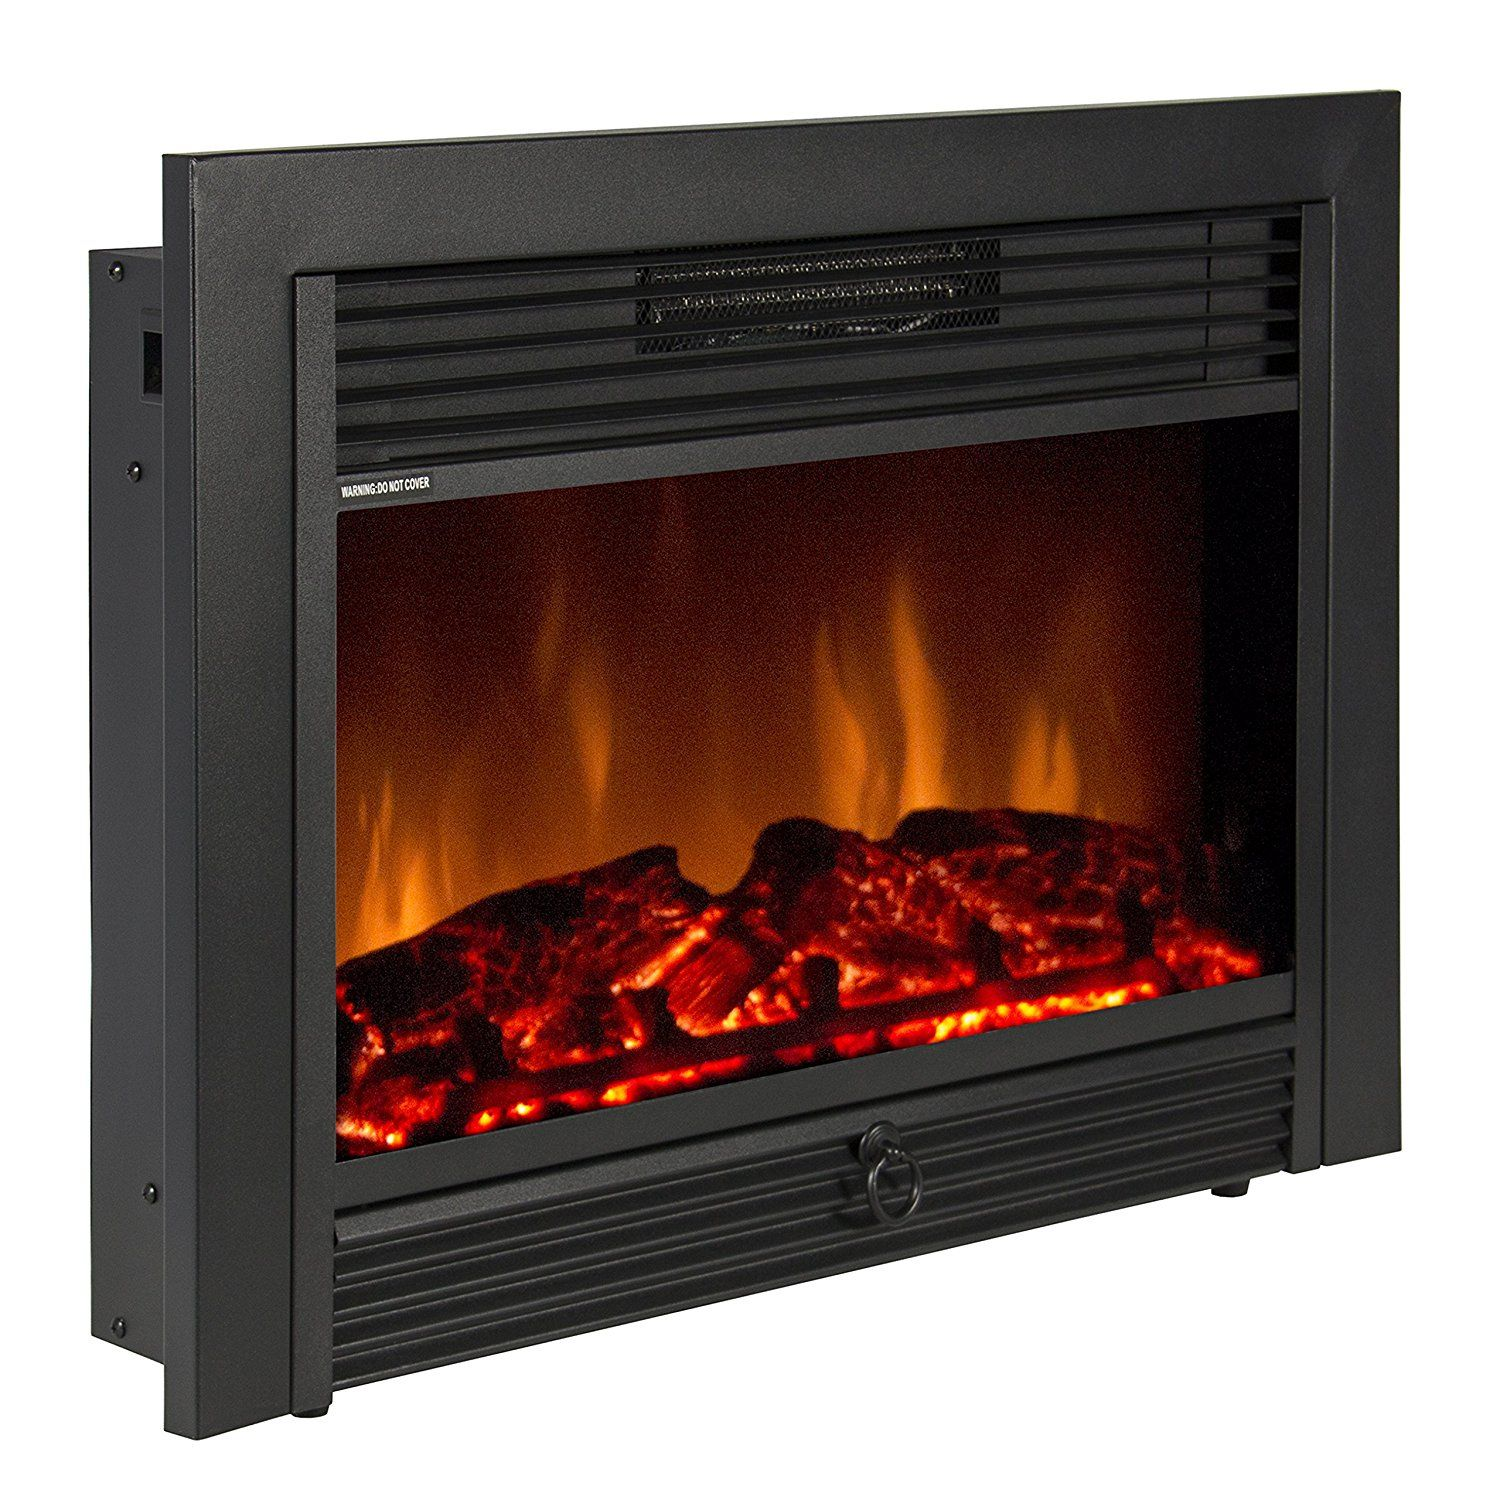 Excellent Best Electric Fireplace Reviews 2017 Top Selling Products Download Free Architecture Designs Scobabritishbridgeorg